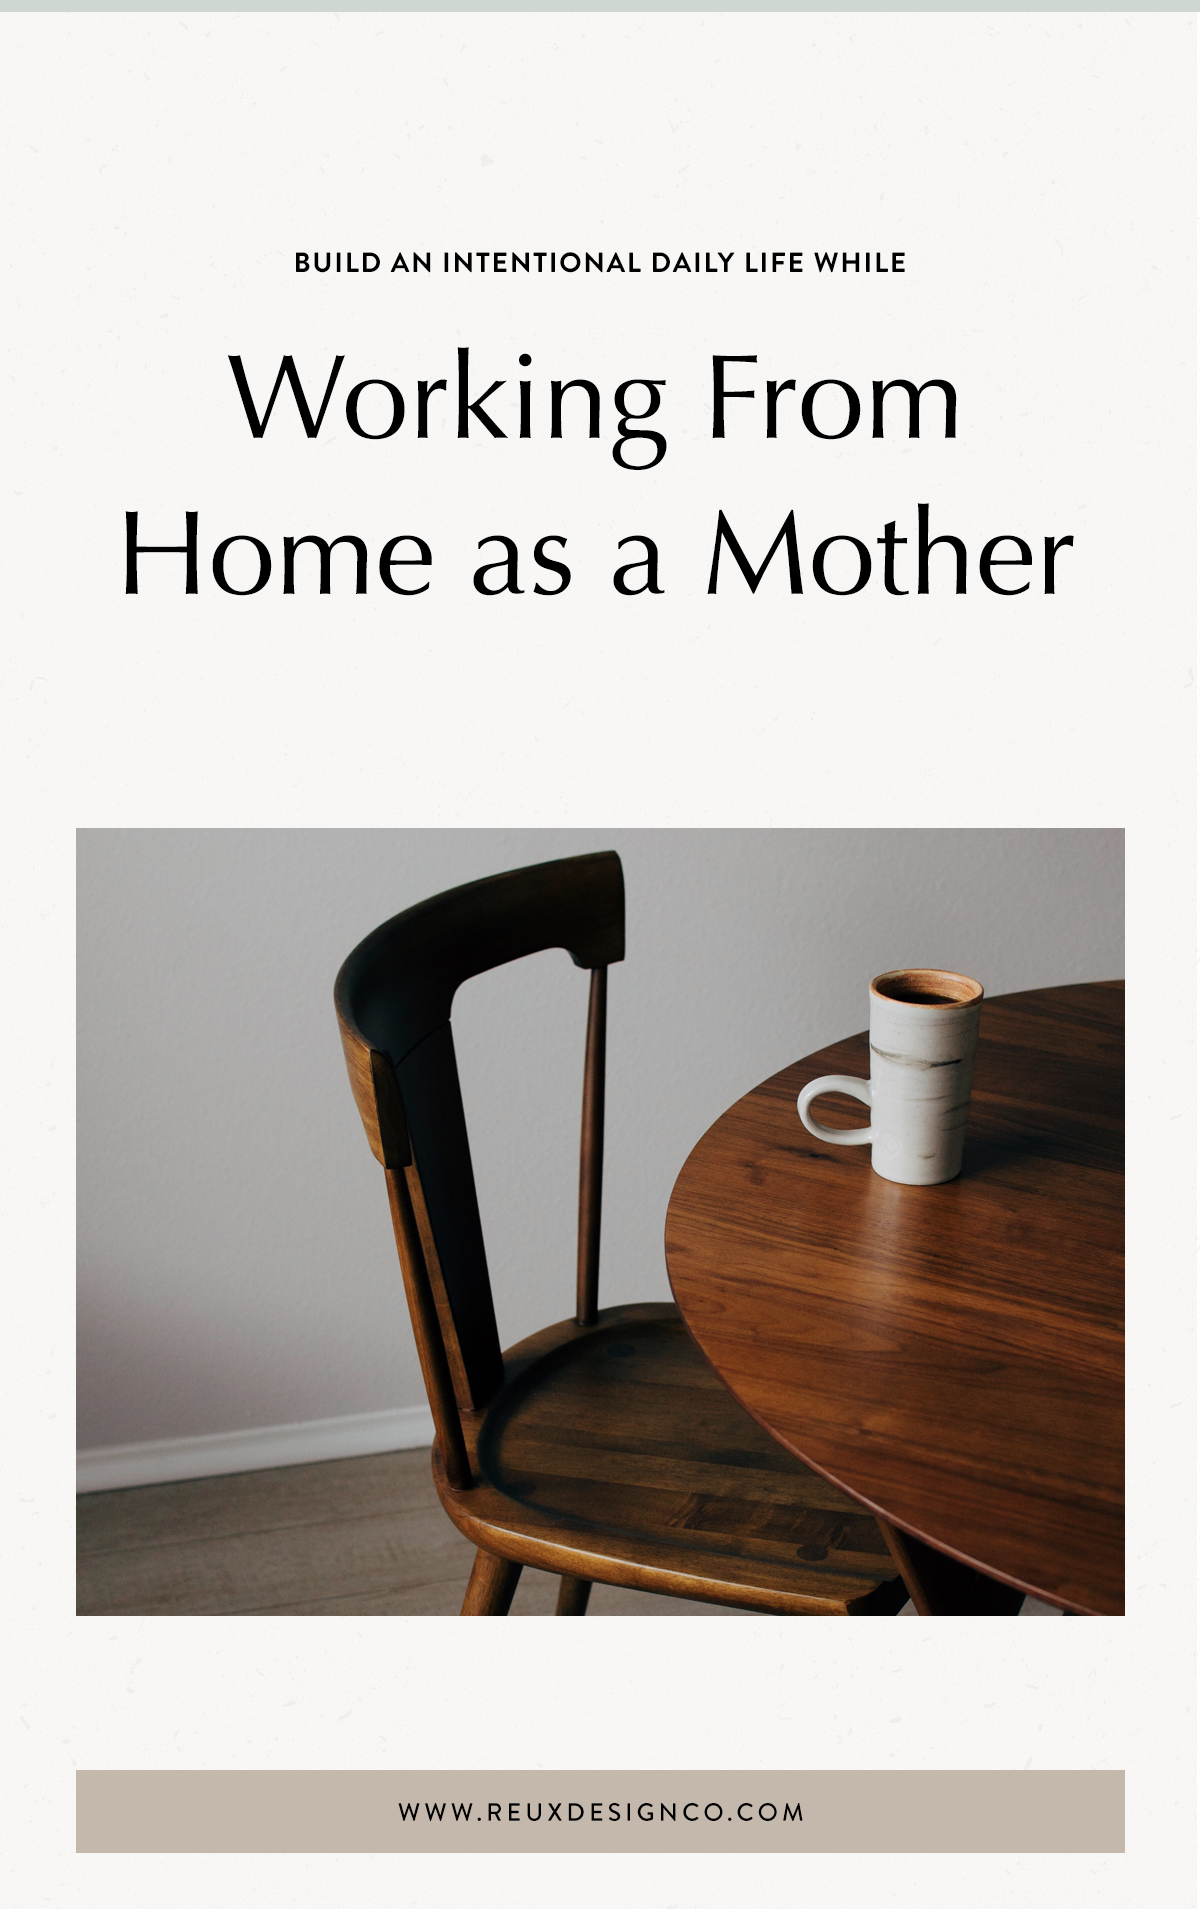 5 Tips to build an intentional routine and life when working from home as a mother | Balancing working from home & being a mom | Reux Design Co. — Brand & Web Design for Holistic, Sustainable Businesses